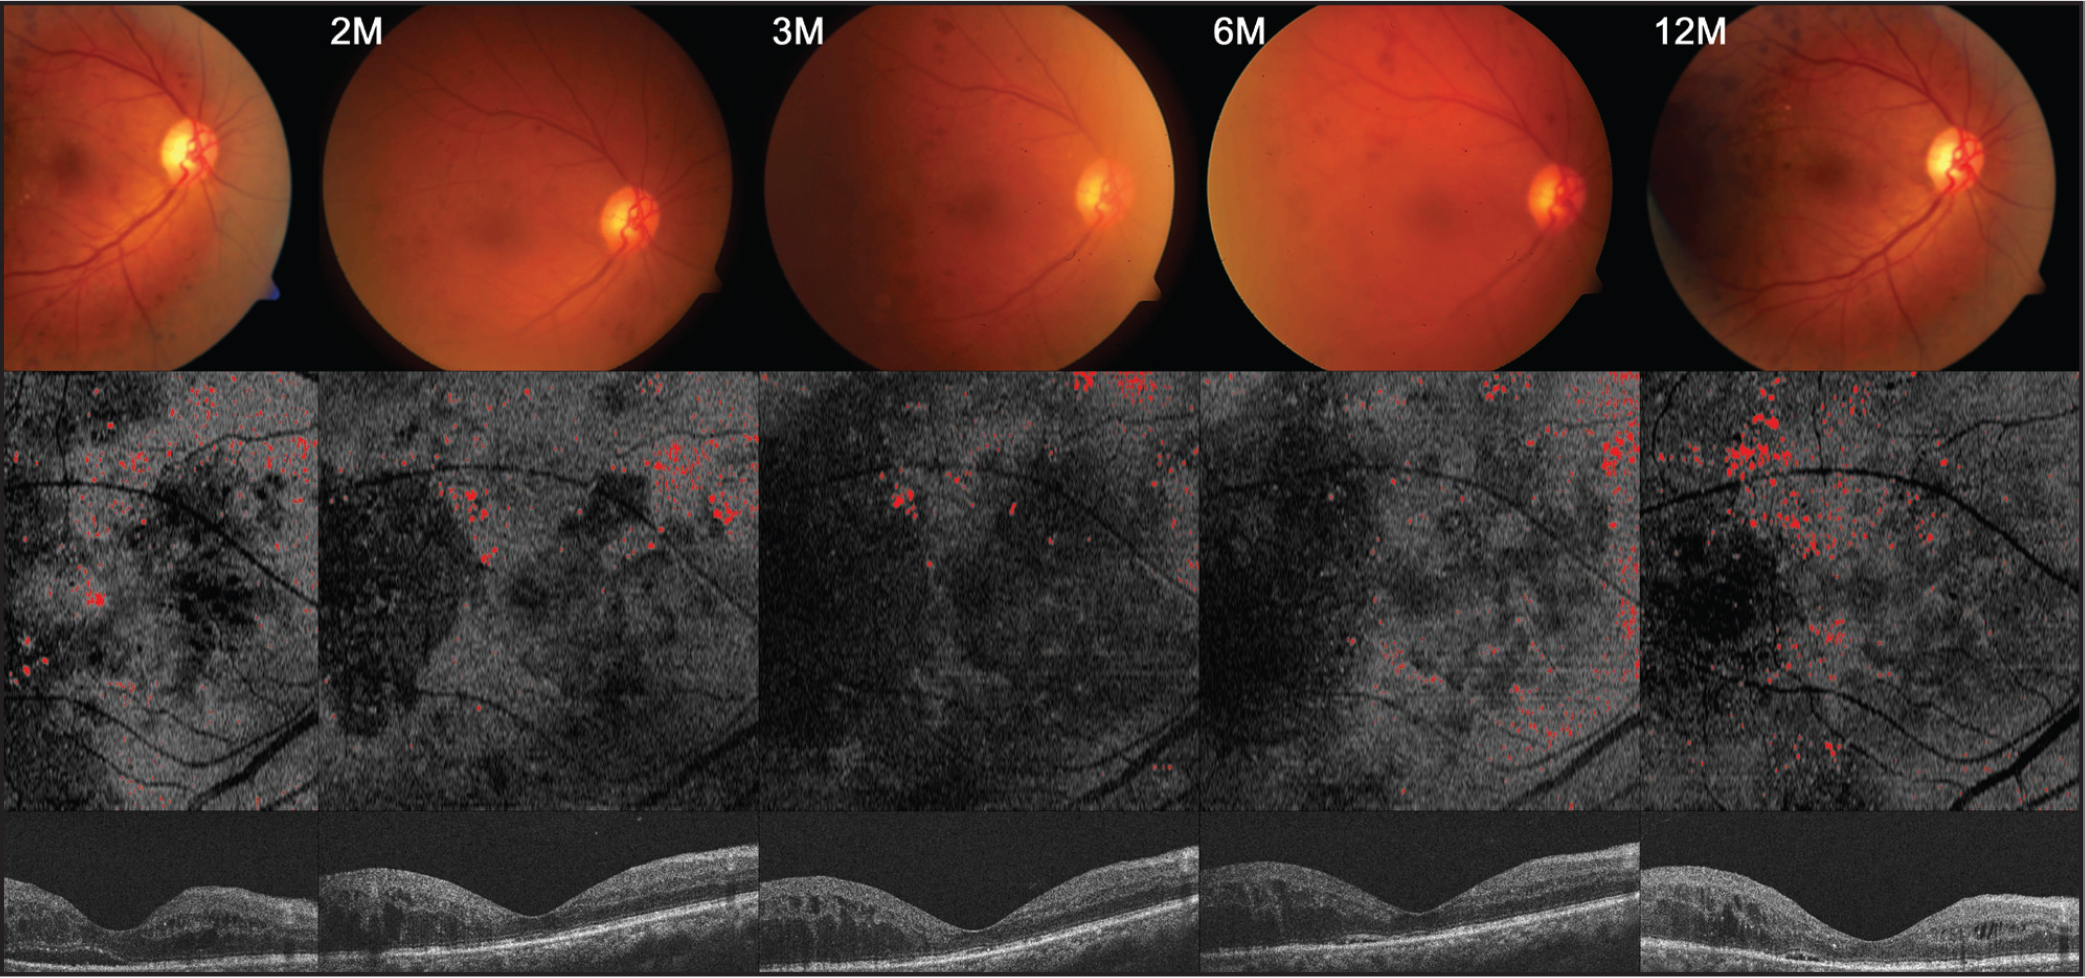 Serial changes in en face outer nuclear layer (ONL) slab hard exudates (HEs) after intravitreal ranibizumab treatment: a 59-year-old male patient with serous retinal detachment. Color fundus images (top), en face ONL slab images indicated with HEs area in red (middle), and cross-sectional images of central subfield corresponding to the en face image (bottom). The area fraction ONL HEs in en face ONL slab images are 1.50% at month 1, 1.49% at month 2, 1.35% at month 3, 1.66% at month 6, and 1.74% at month 12.